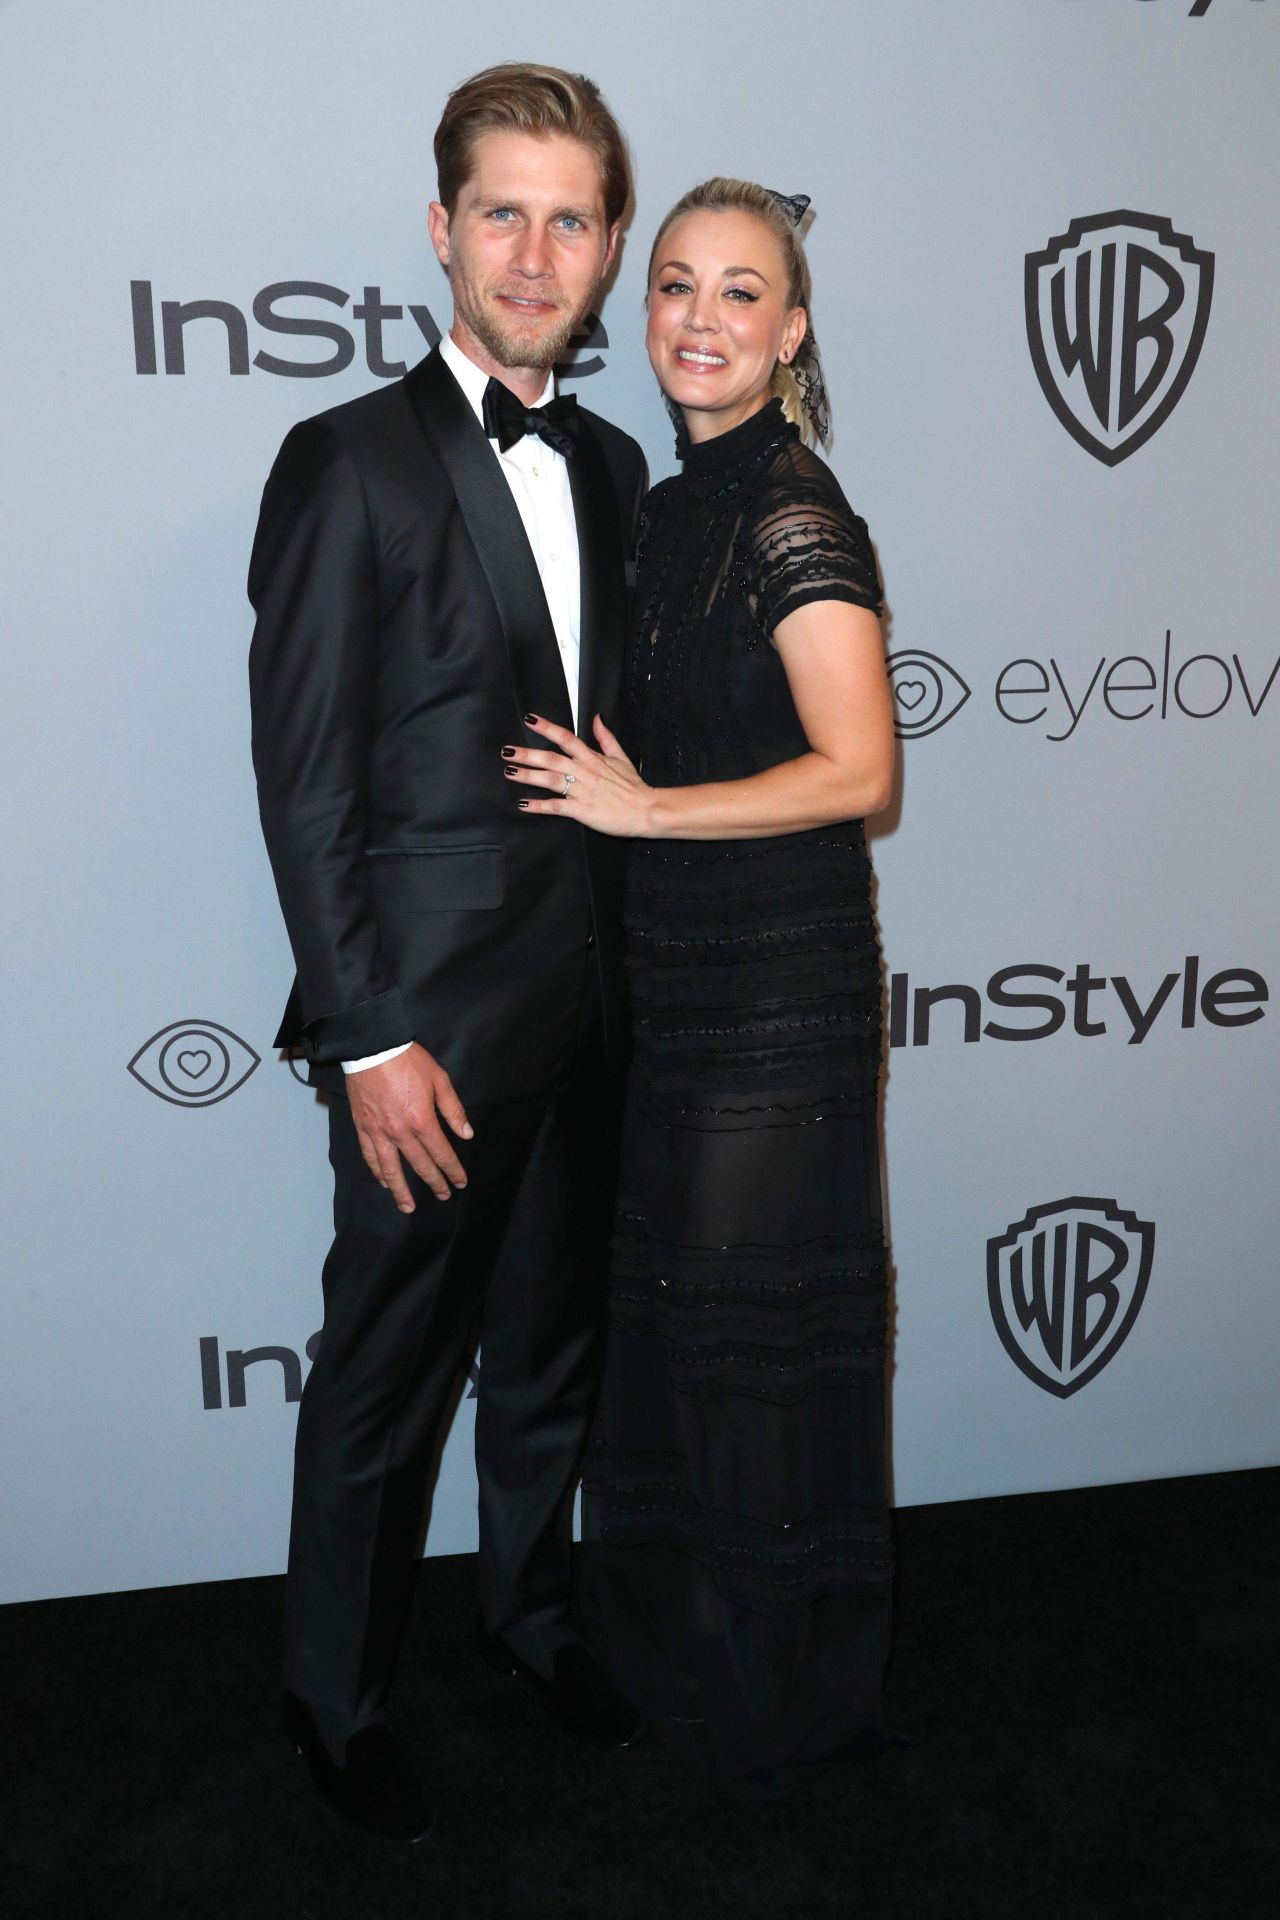 http://celebmafia.com/wp-content/uploads/2018/01/kaley-cuoco-instyle-and-warner-bros-golden-globes-2018-after-party-1.jpg